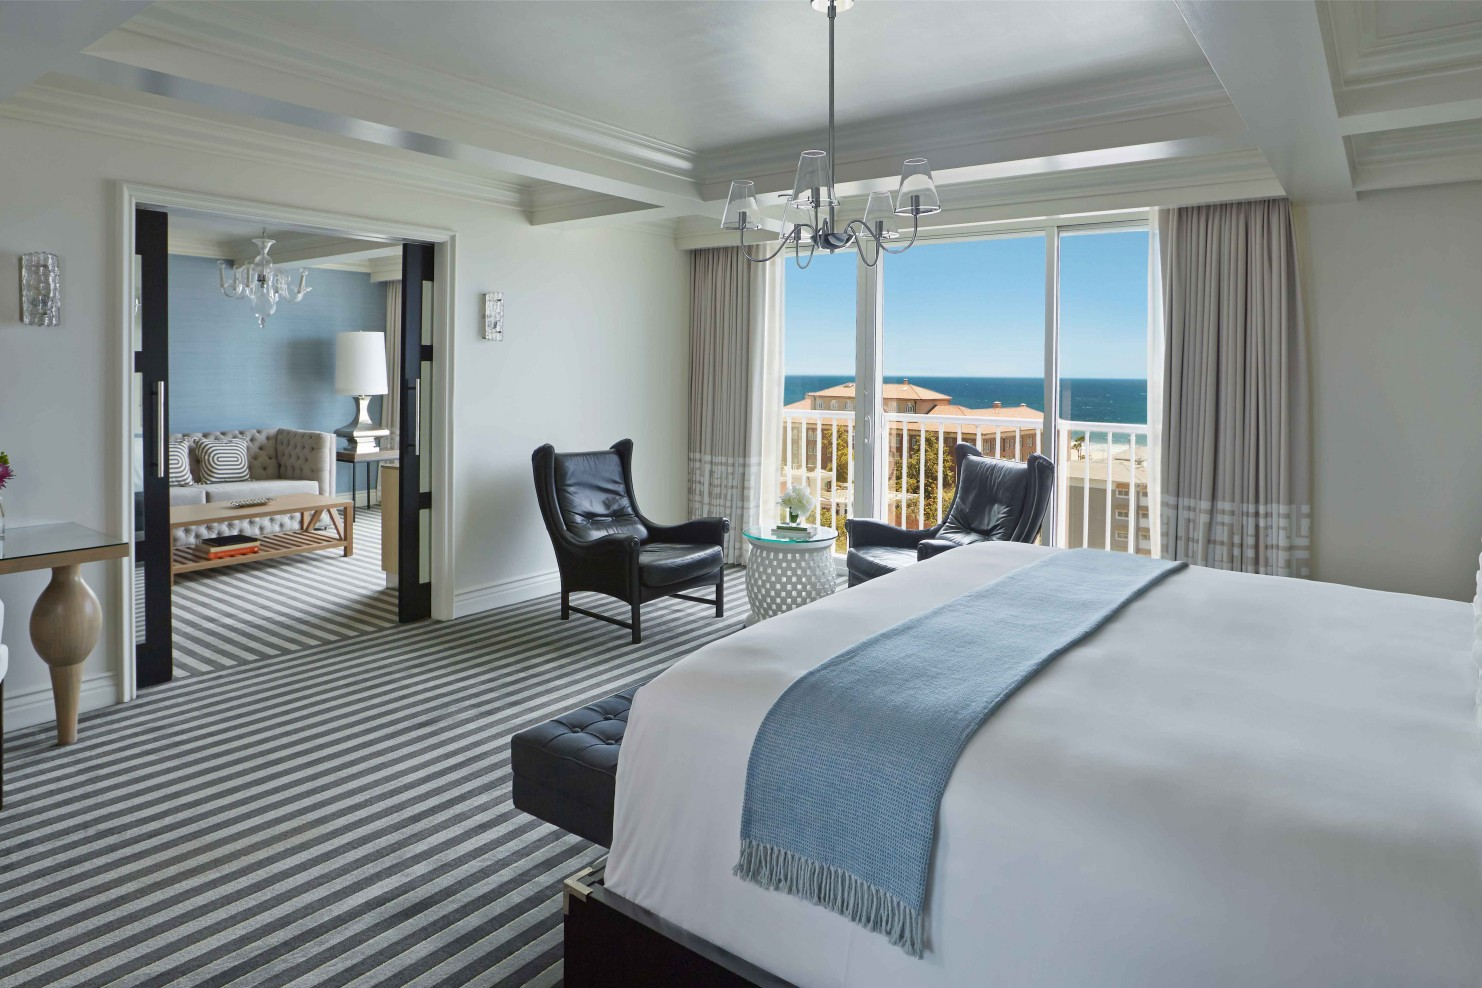 The Best Hotels In Santa Monica Discover Our Boutique Luxury